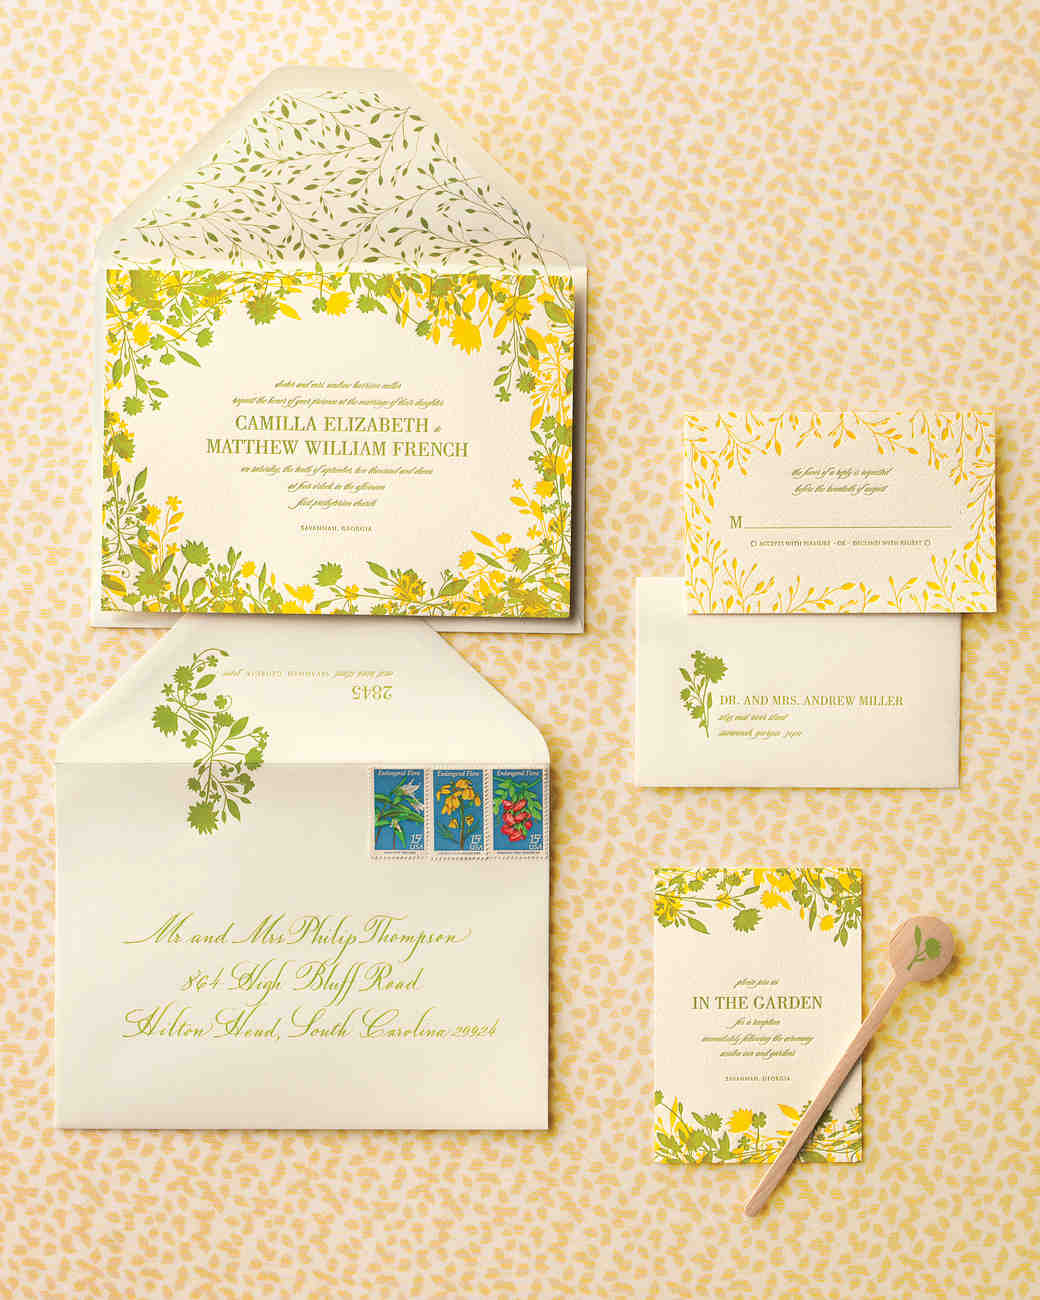 stationery-flower-0811mwd107463.jpg